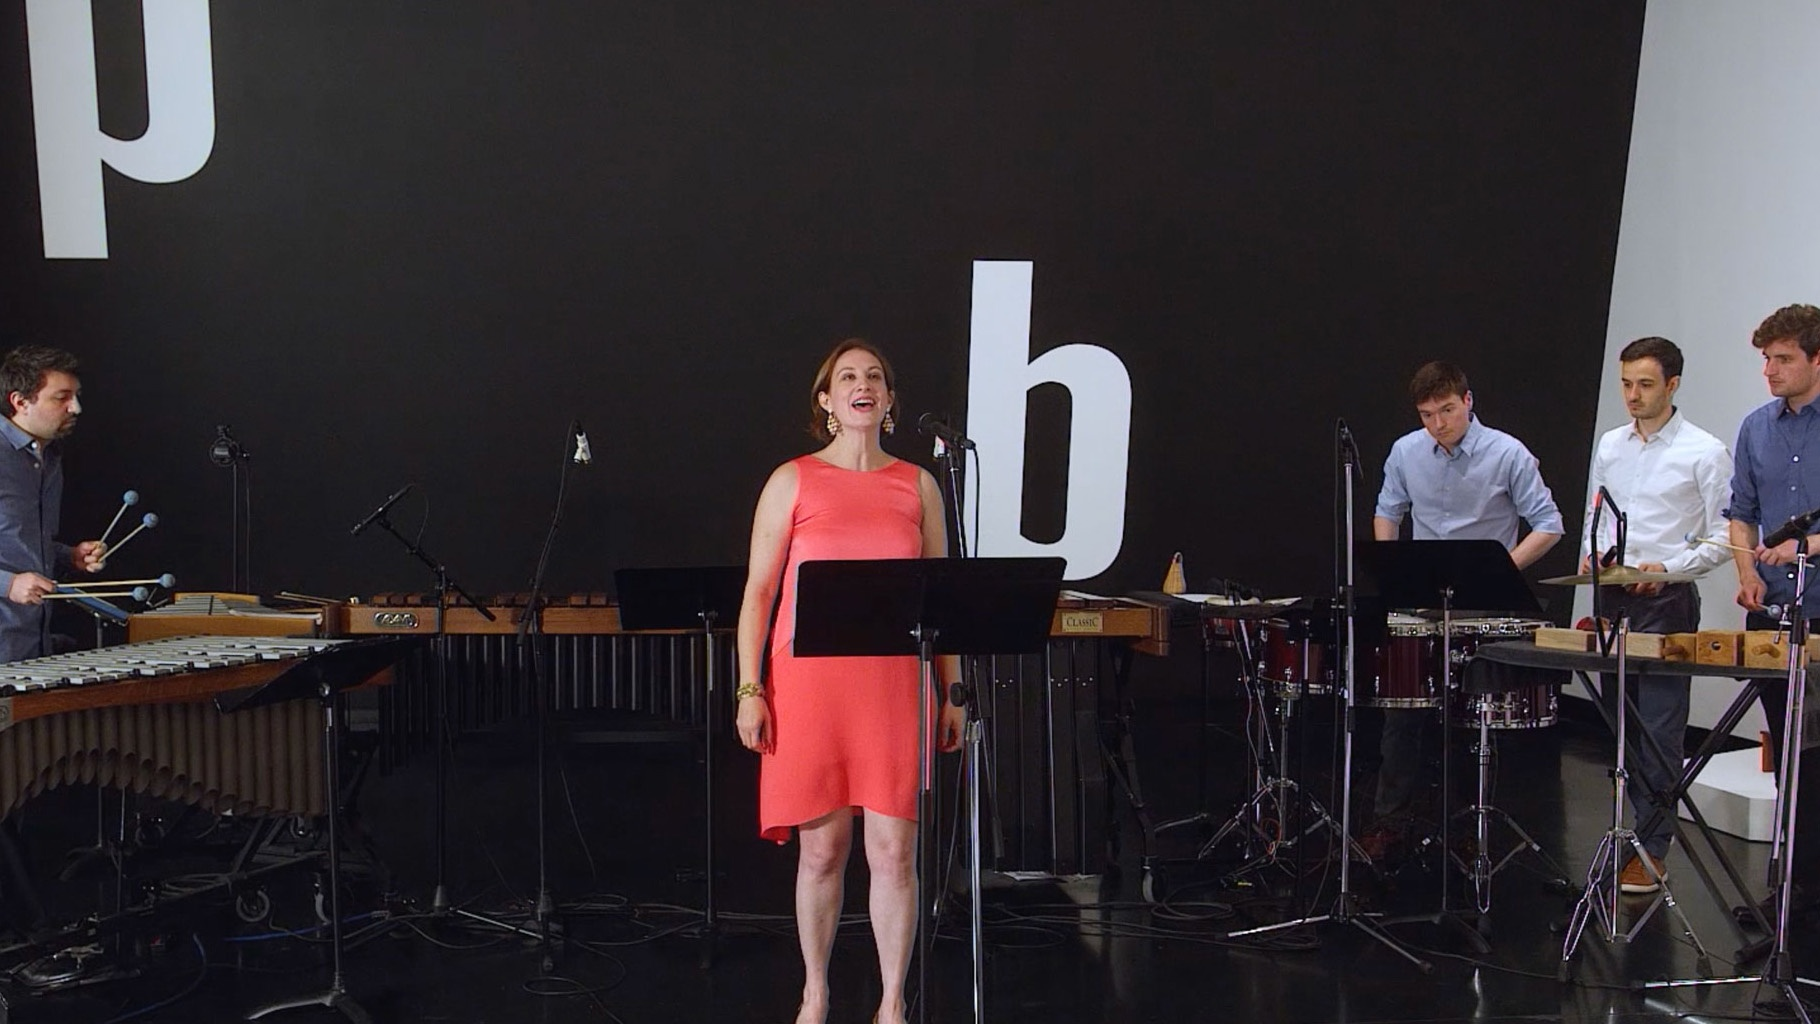 A woman sings while percussionist perform behind her